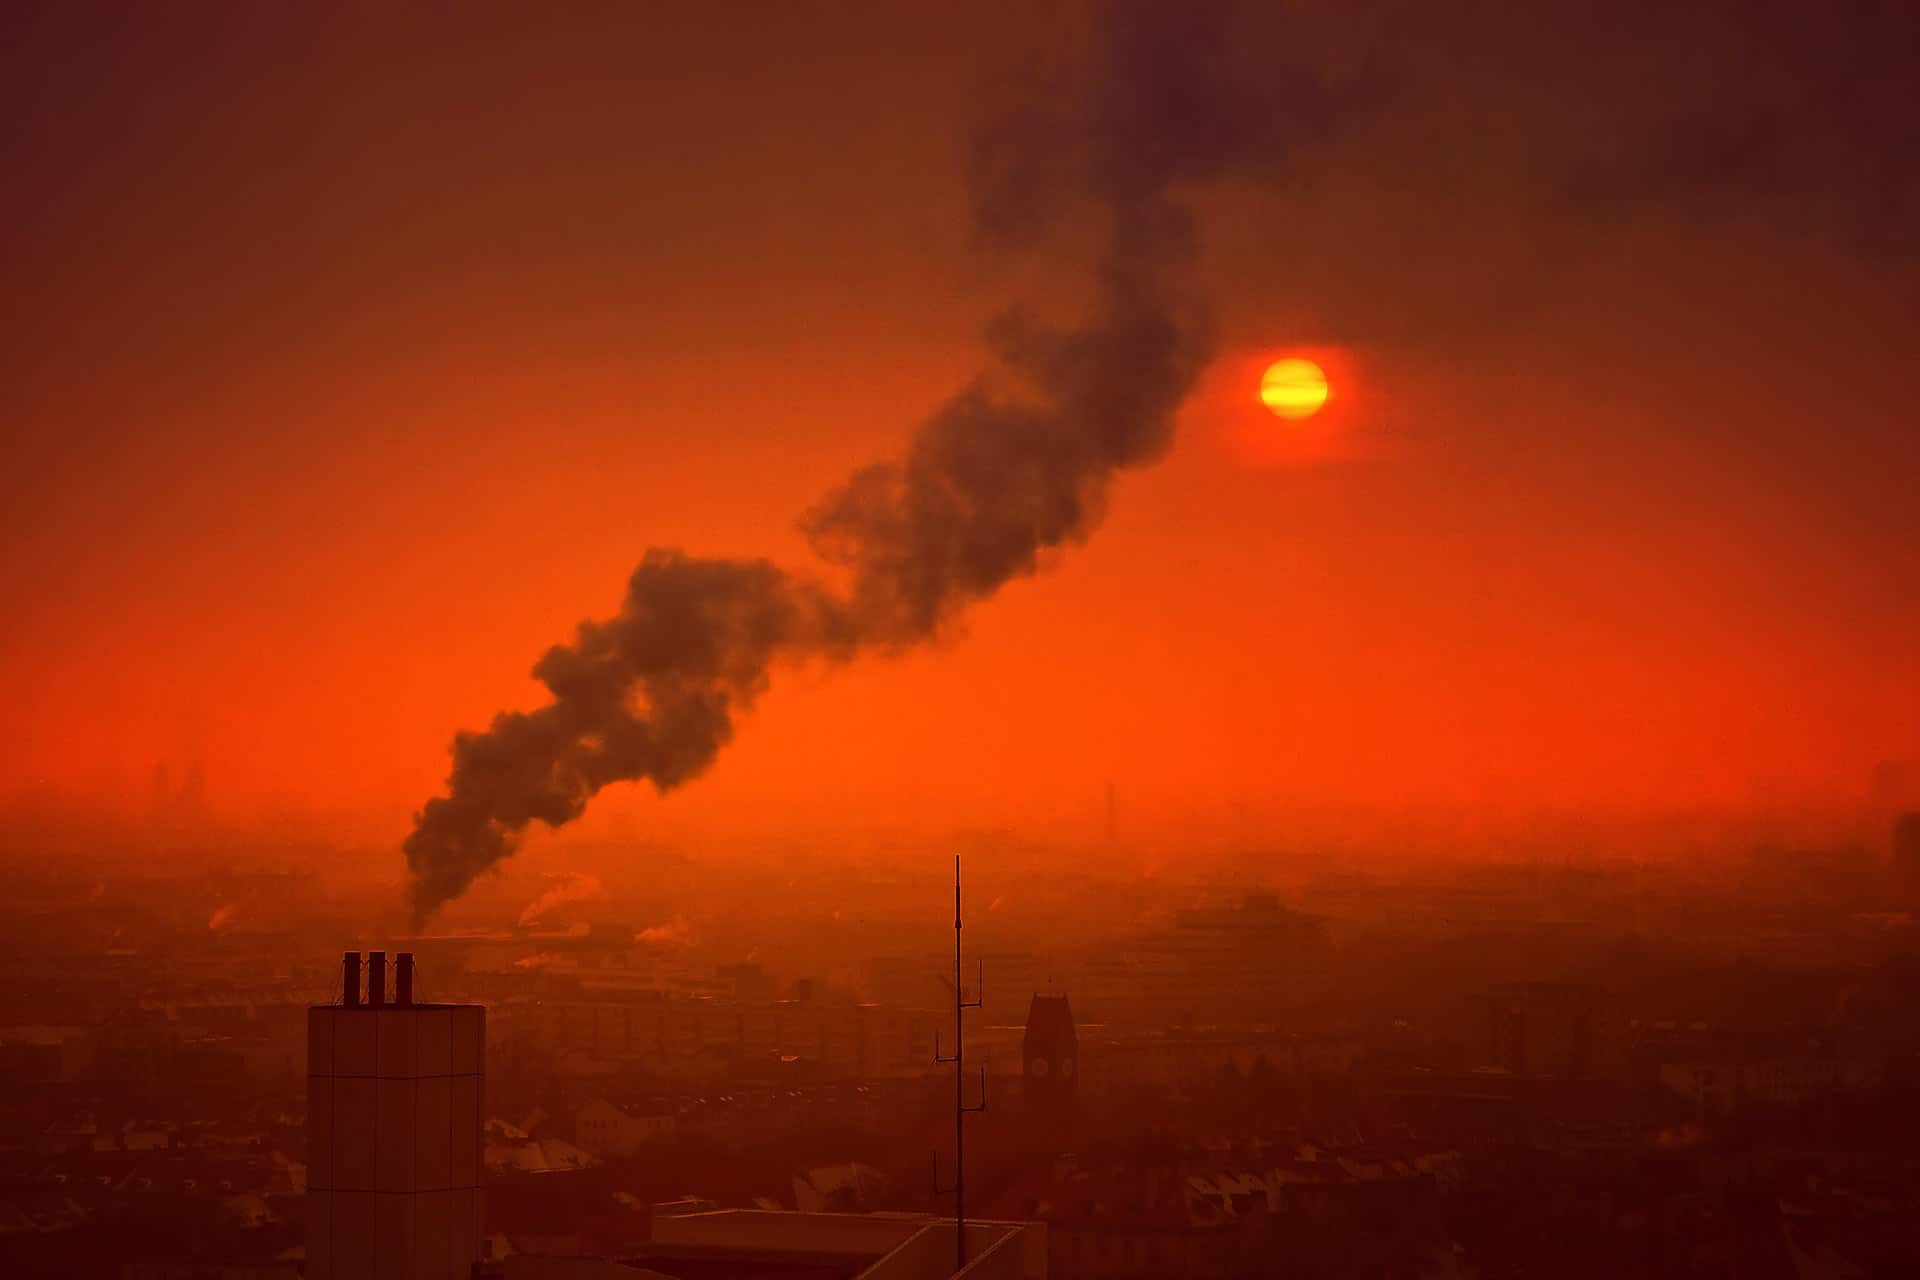 Air pollution exposure in childhood linked to schizophrenia risk, finds study